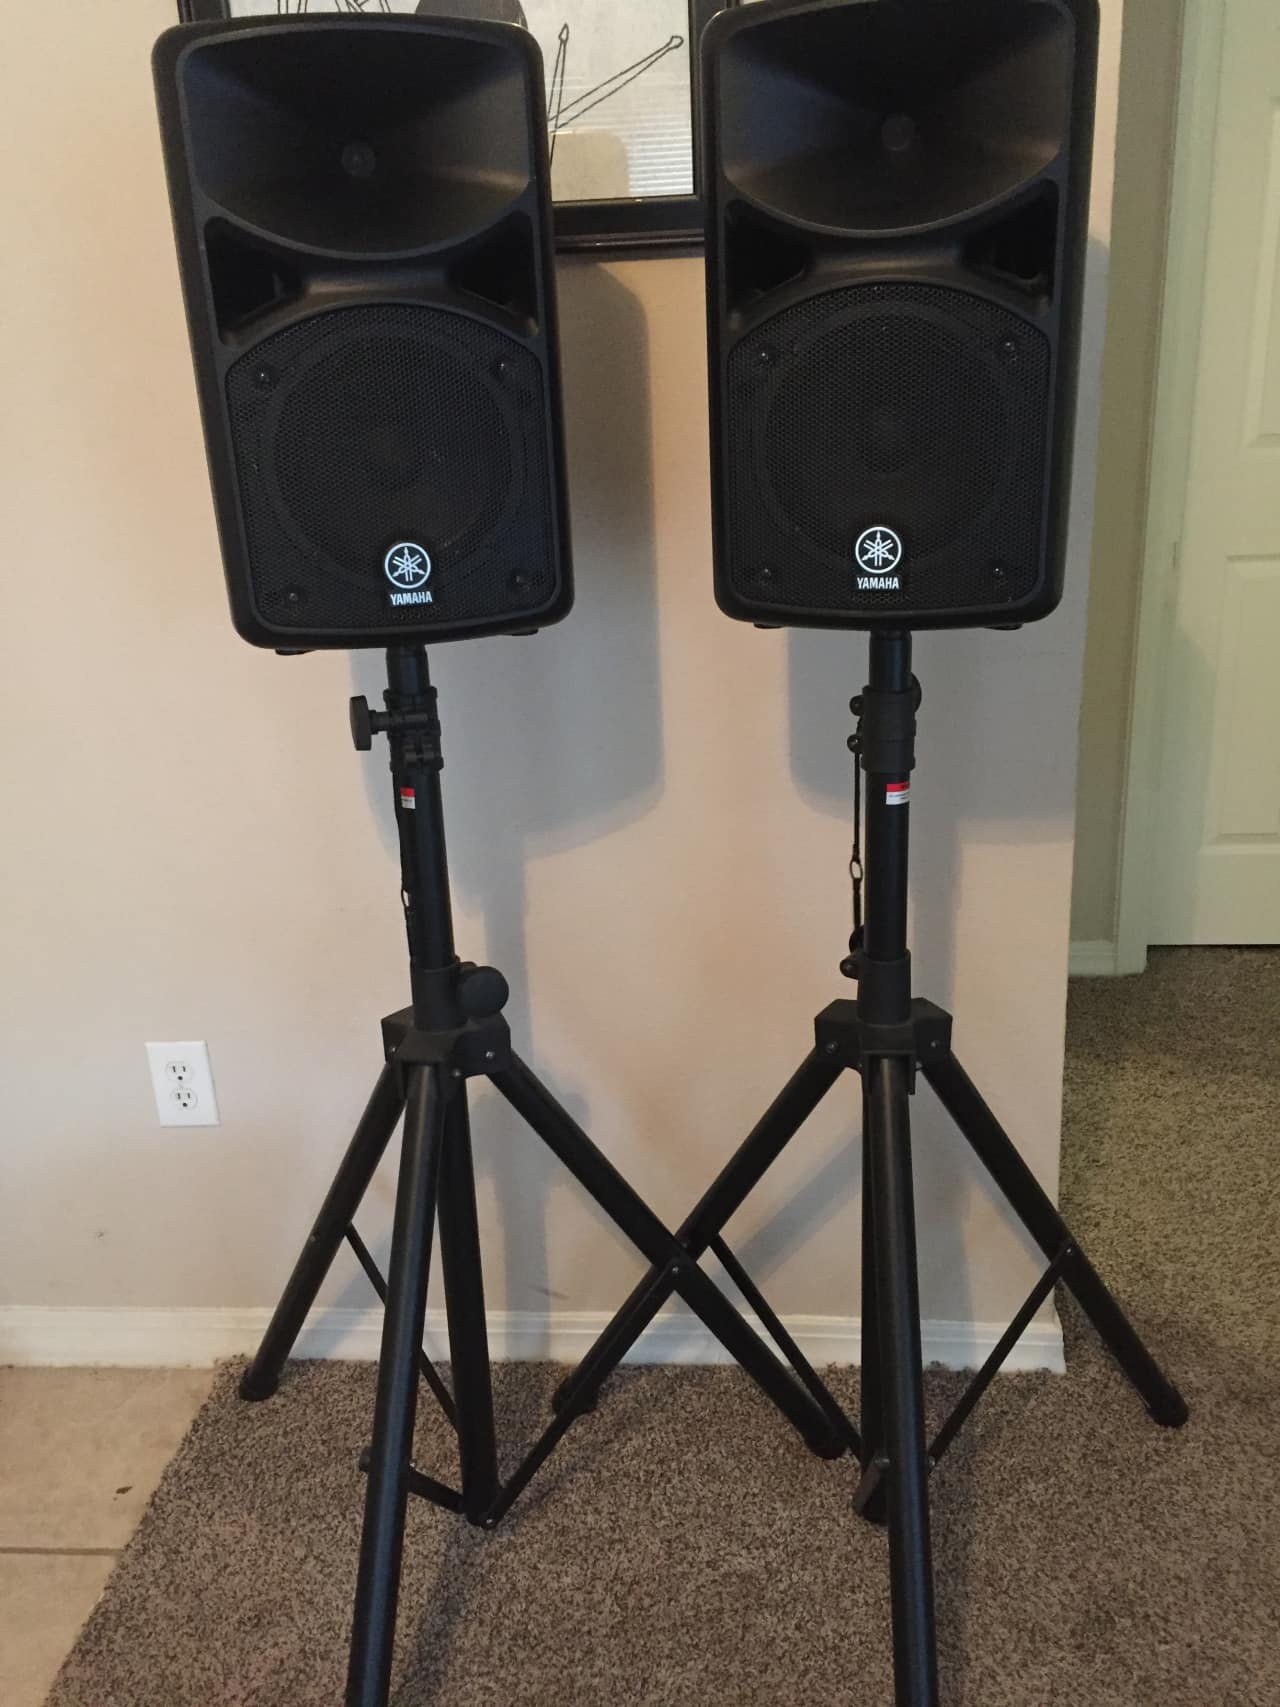 Yamaha stagepas 400i portable pa system reverb for Yamaha stagepas 400i price